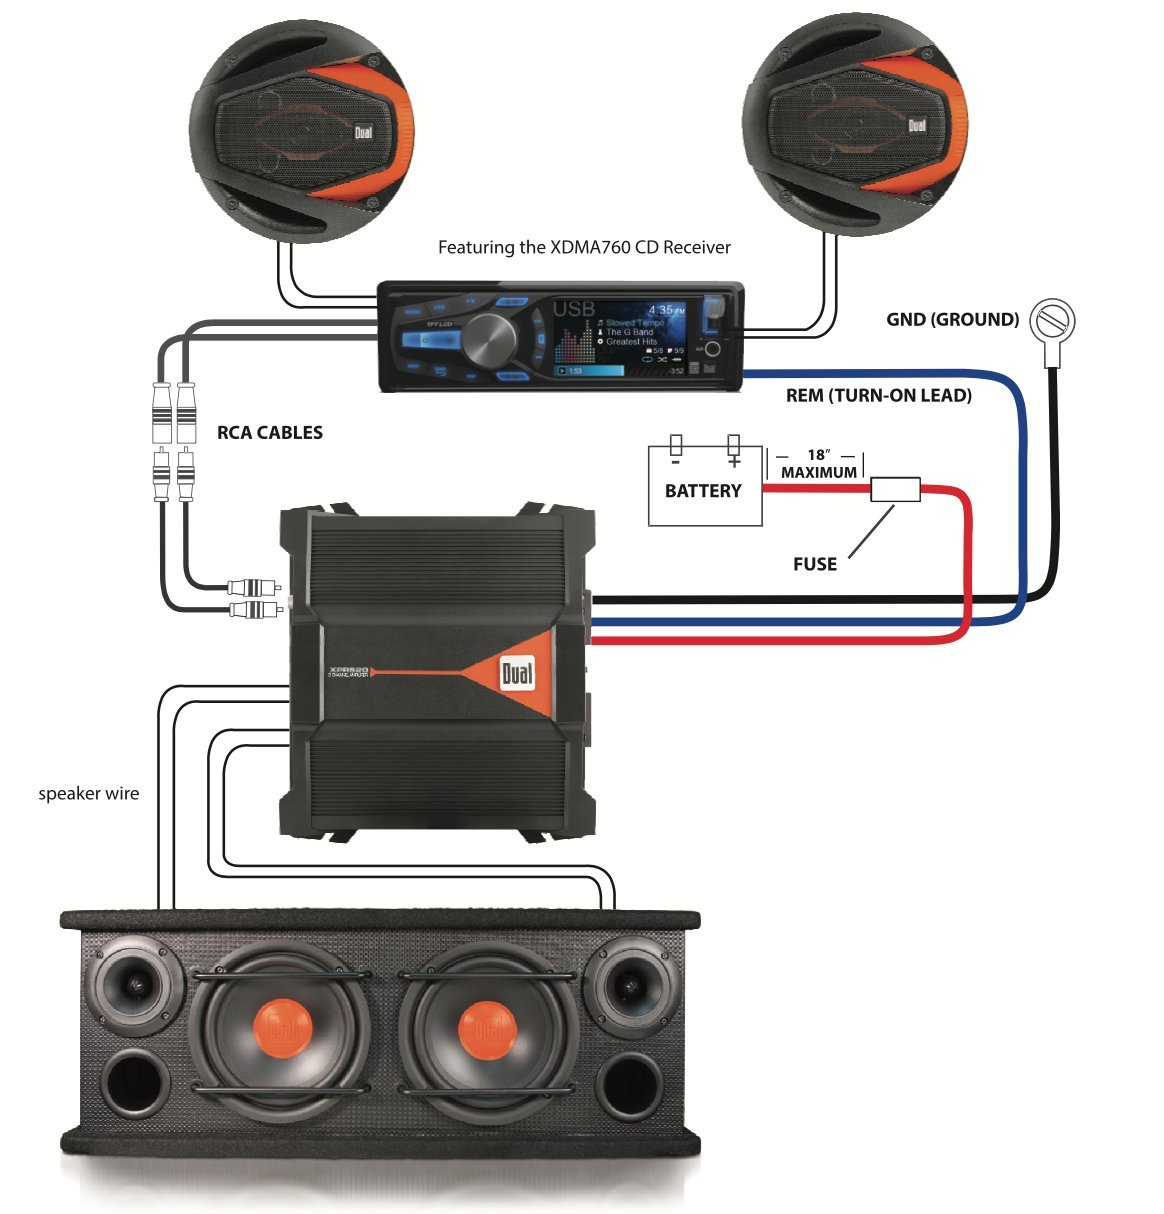 717eJMYhfkL._SL1214_ dual sbx6502 2 way full range speaker box with two 6 5 inch dual xdma760 wiring diagram at webbmarketing.co